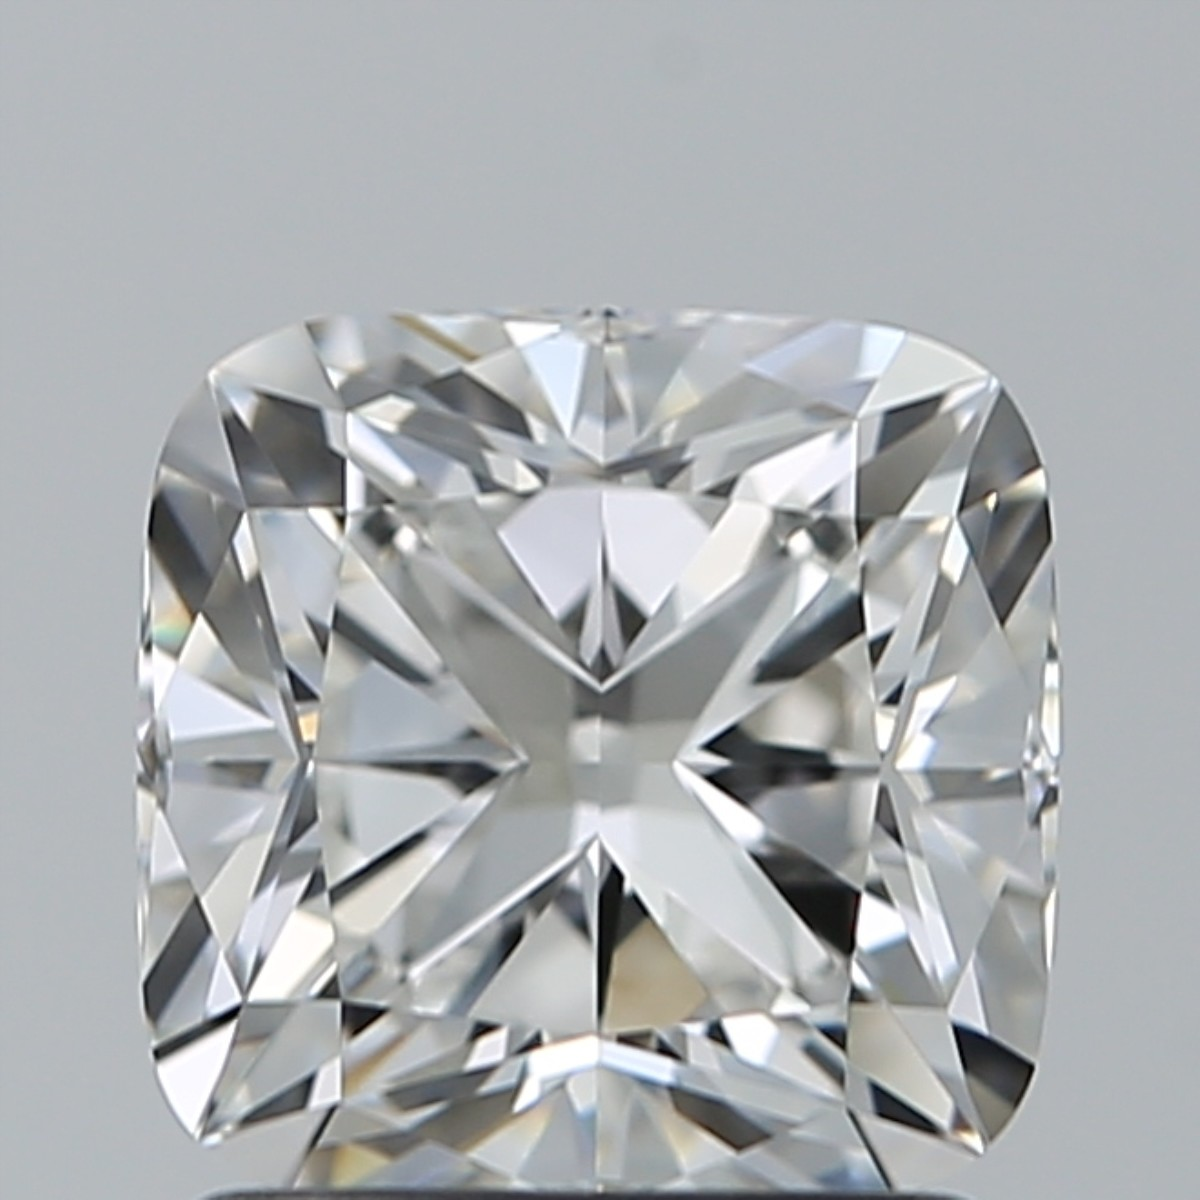 1.51 Carat Cushion Diamond (G/IF)